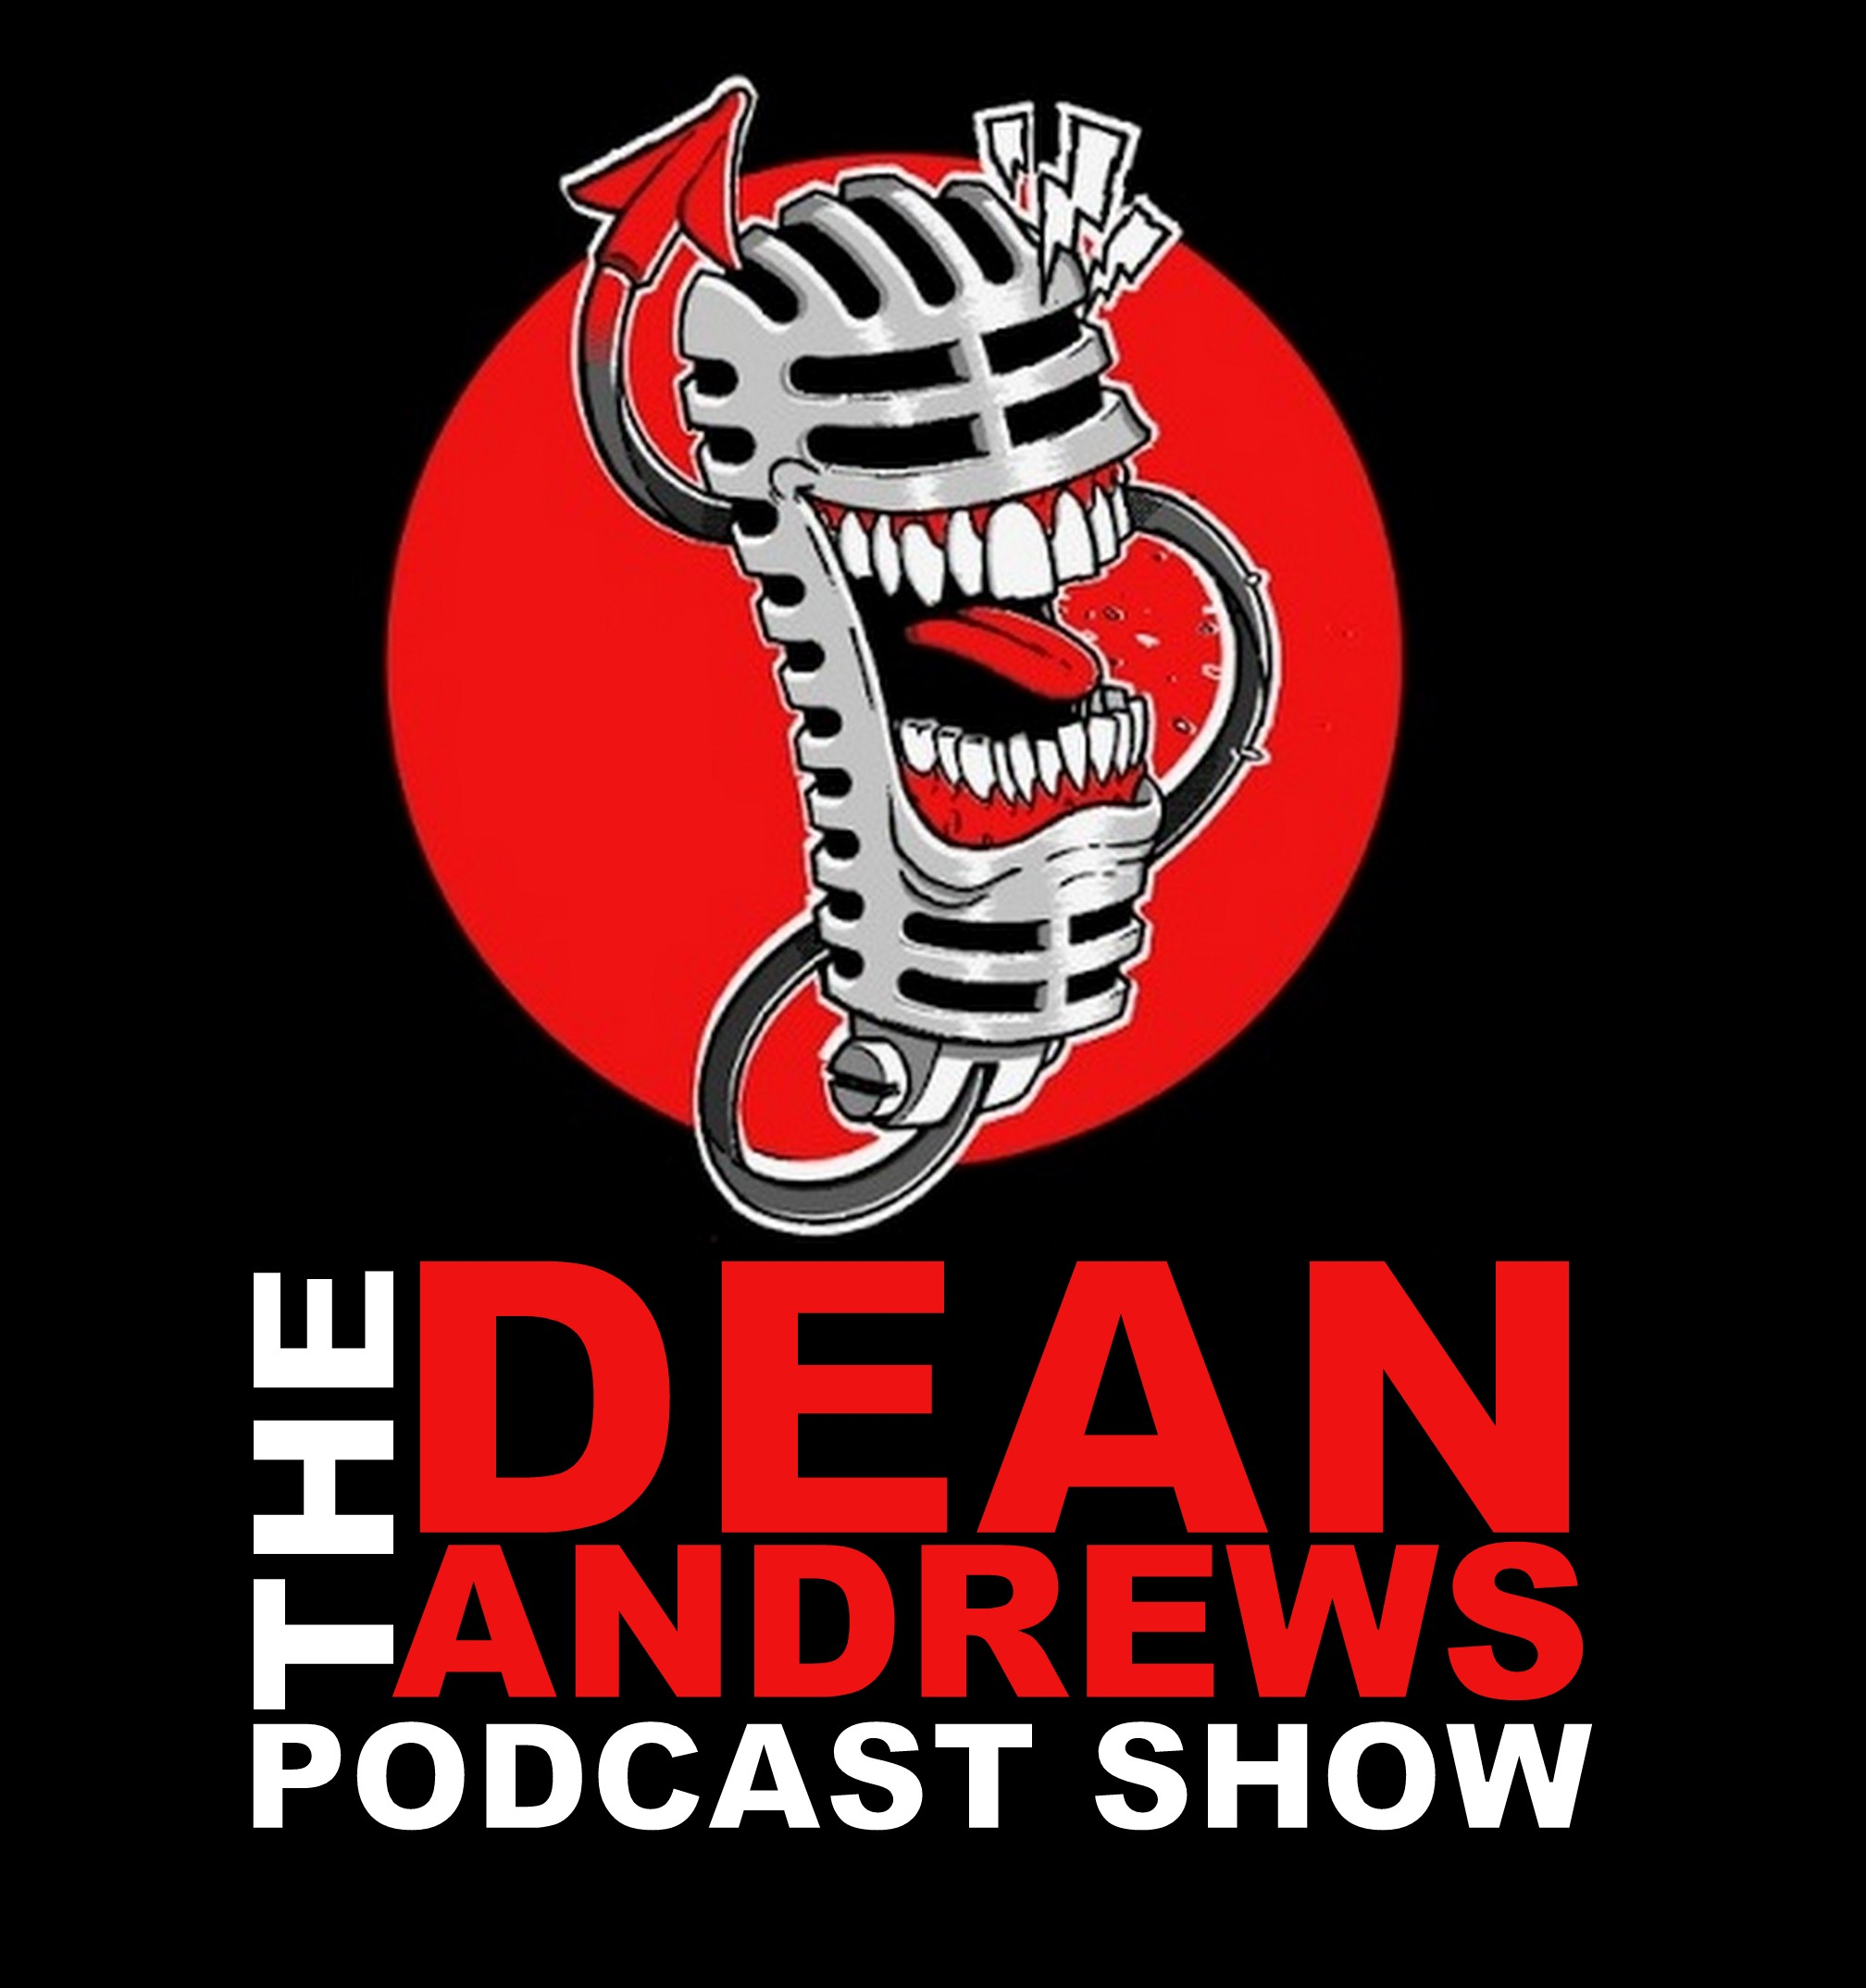 The Dean Andrews Podcast Show show art